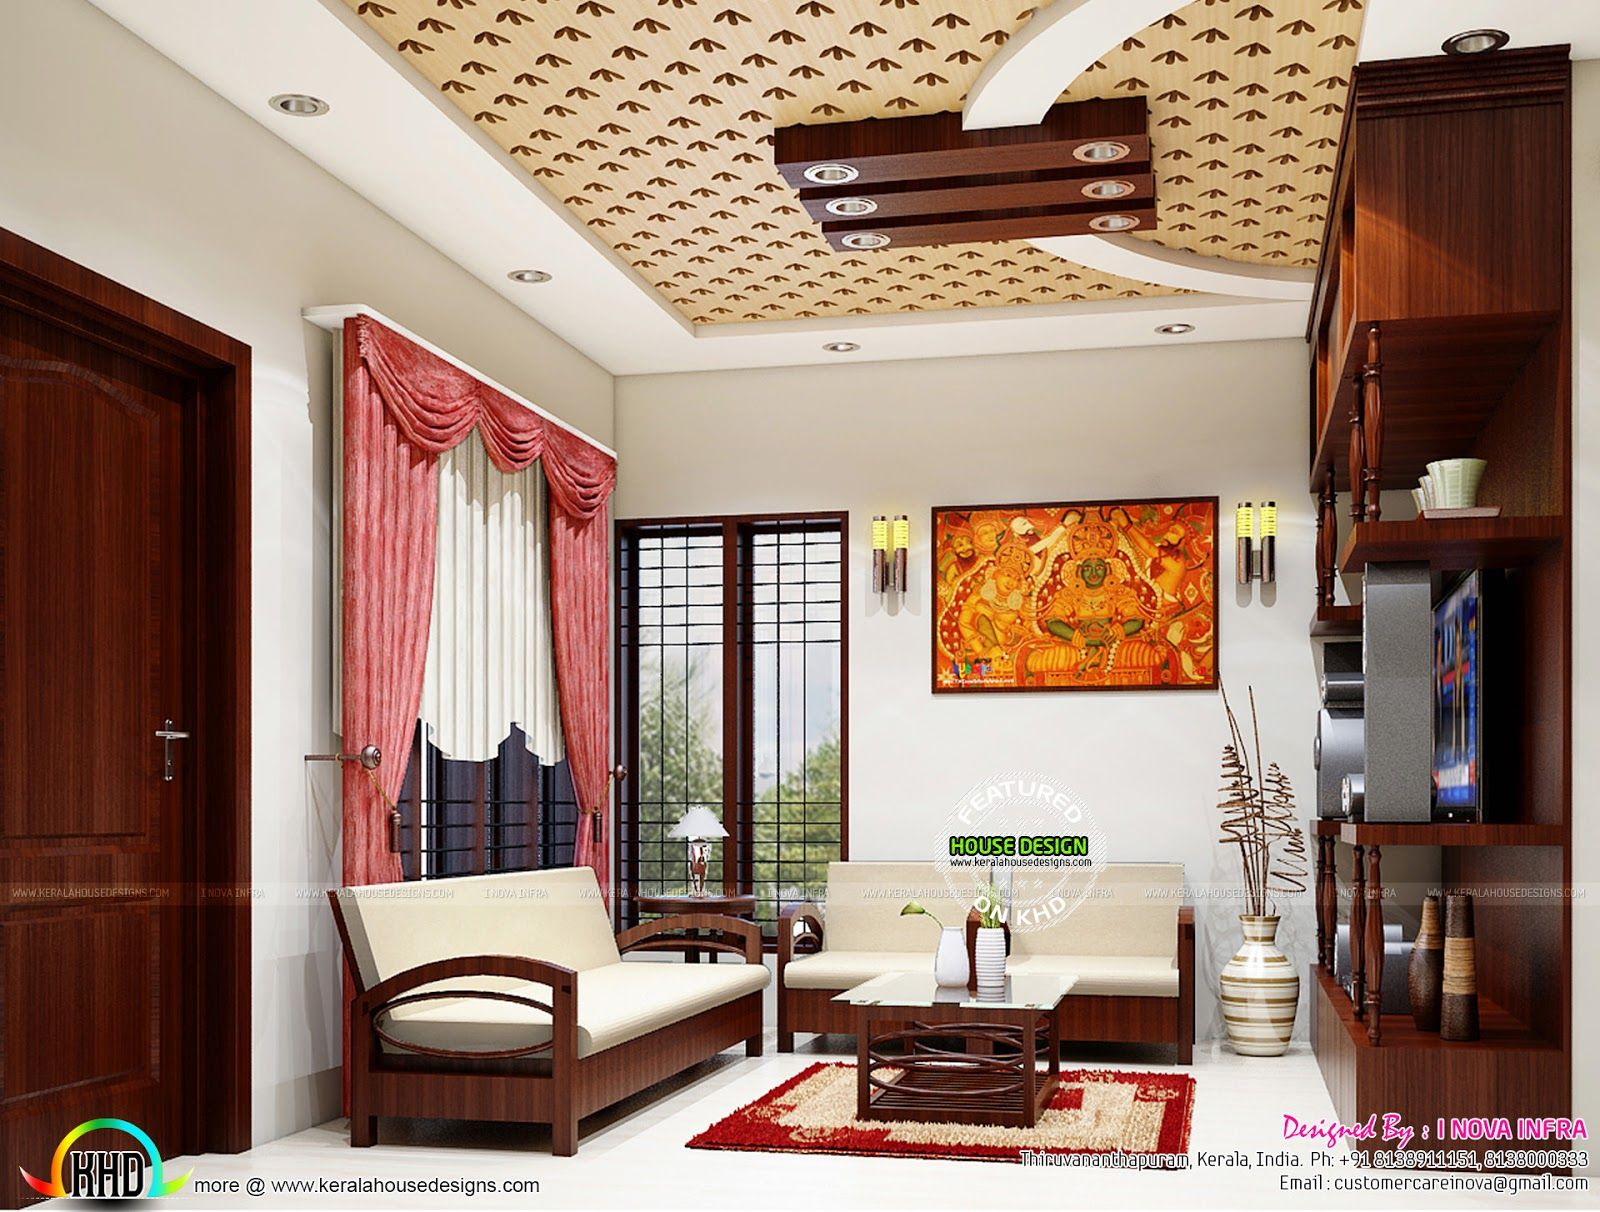 kerala traditional home interior designs in 2019 ...